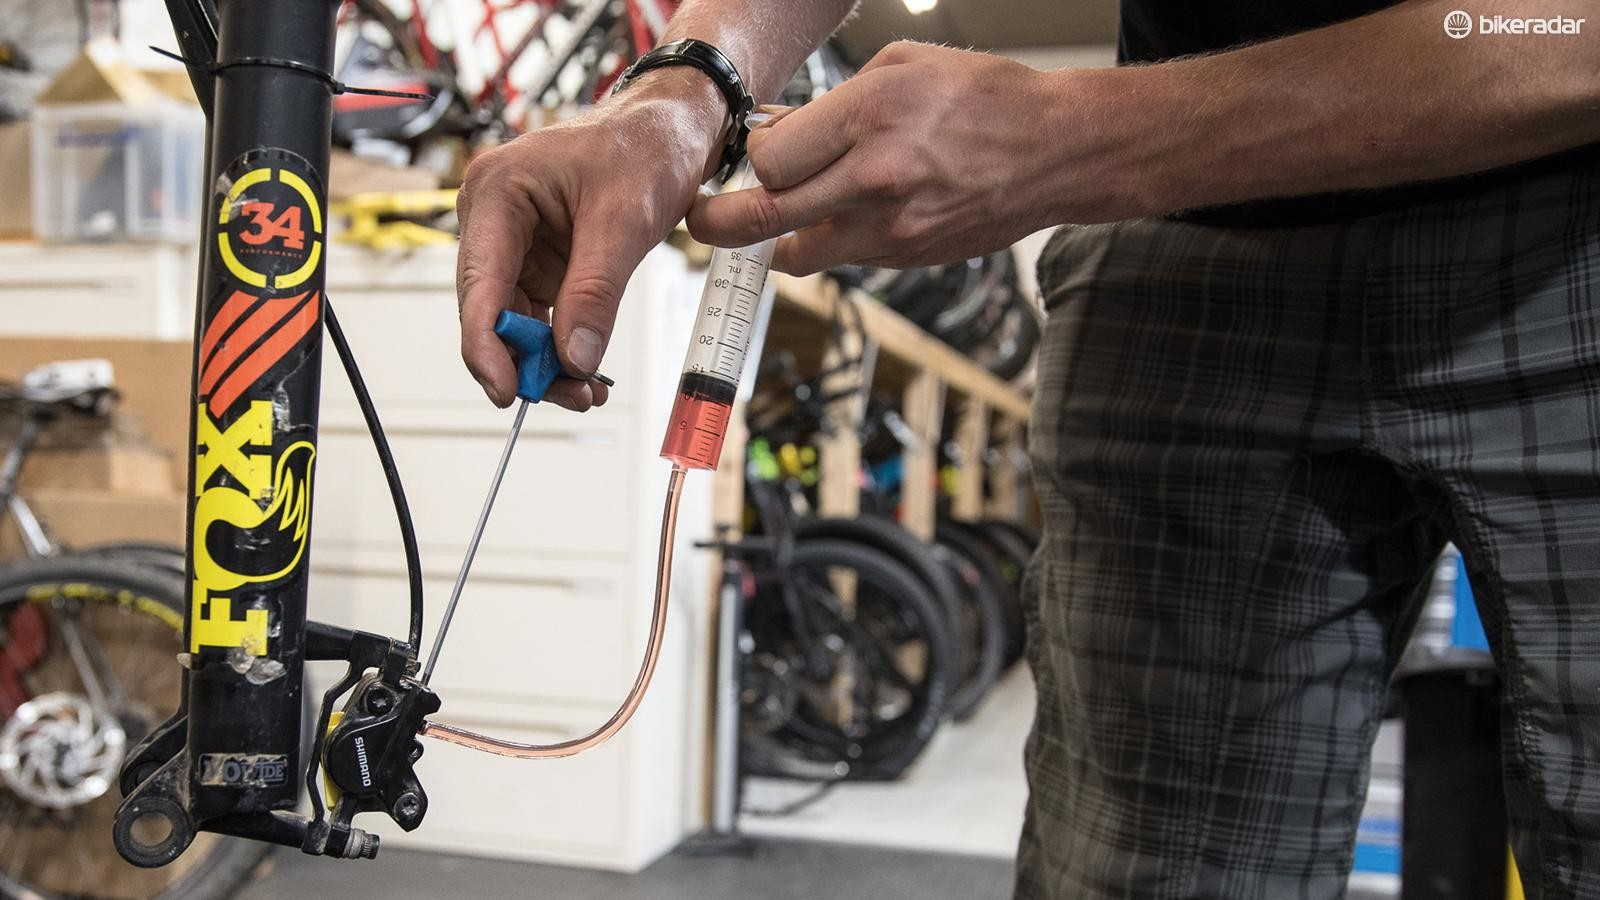 Shimano disc brake bleeding procedure — step-by-step guide to remove